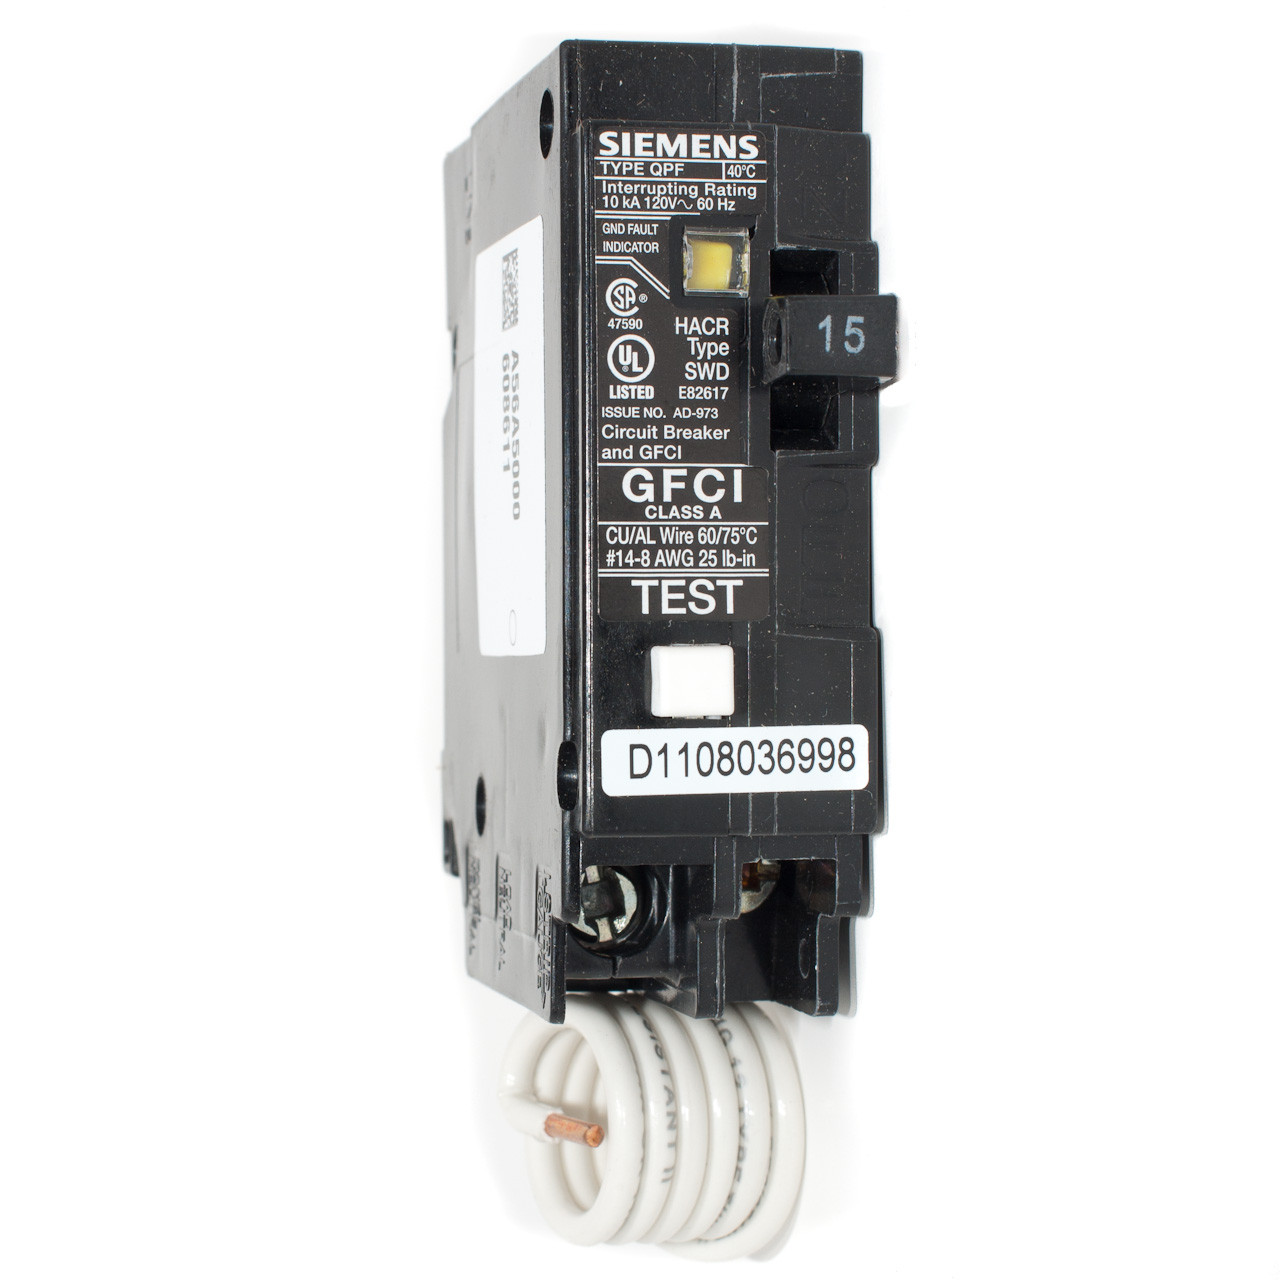 Siemens Ground Fault Circuit Interrupter Not Lossing Wiring Diagram Qf115 15a Single Pole Gfci Push On Breaker Tremtech Rh Store Com Arc